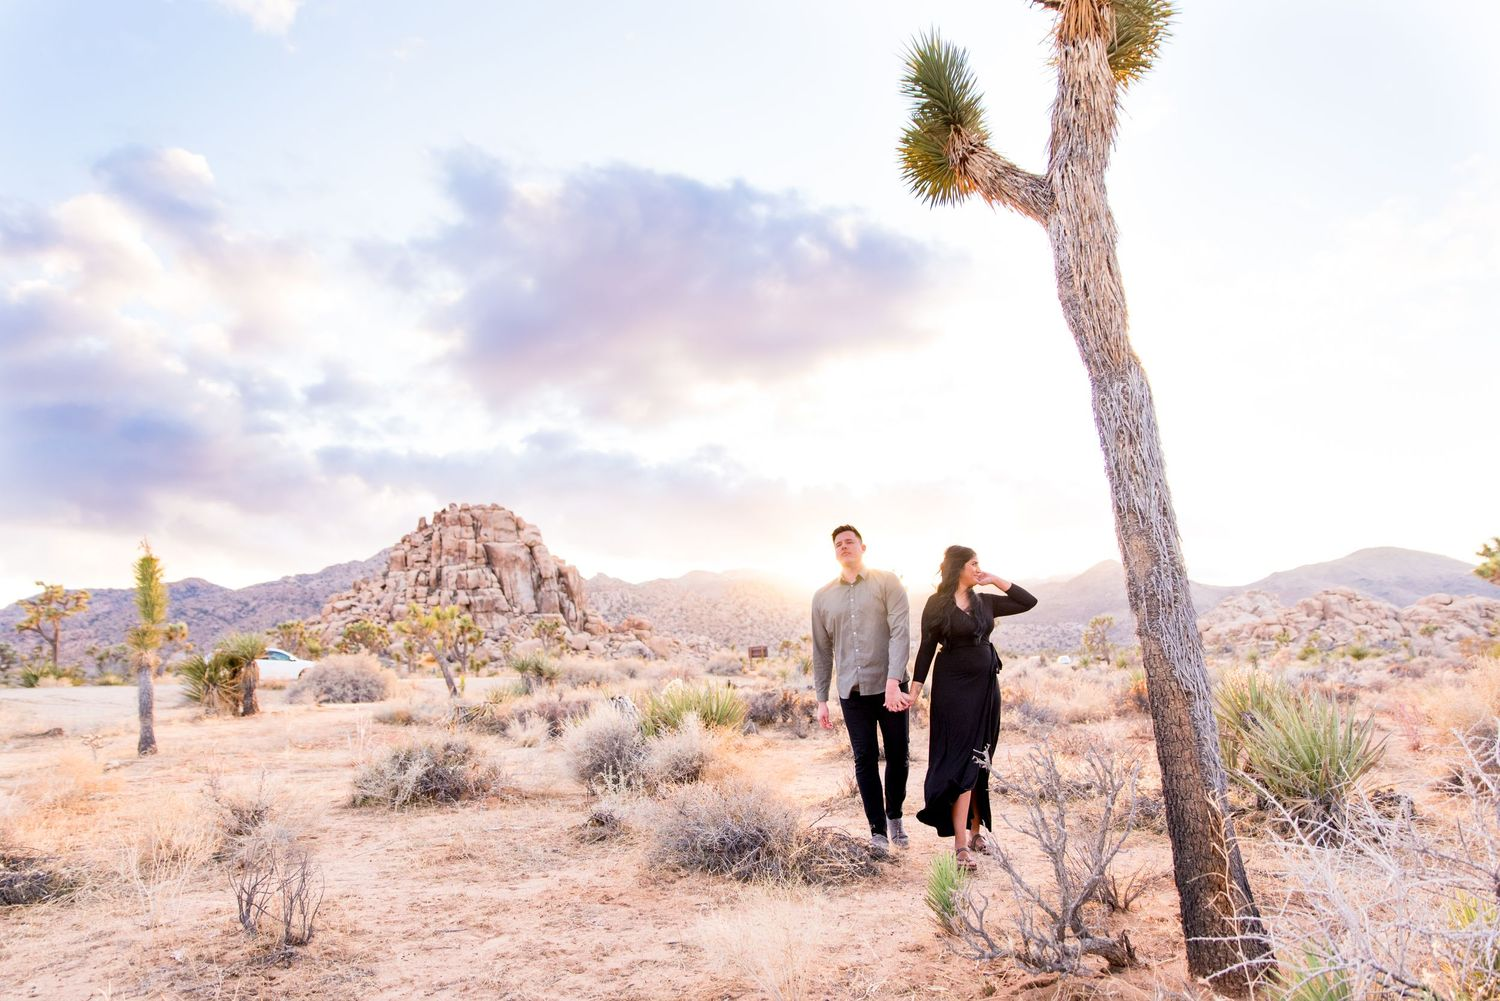 man and woman hold hands in Joshua Tree National Park under a blue and pink cloudy sunset